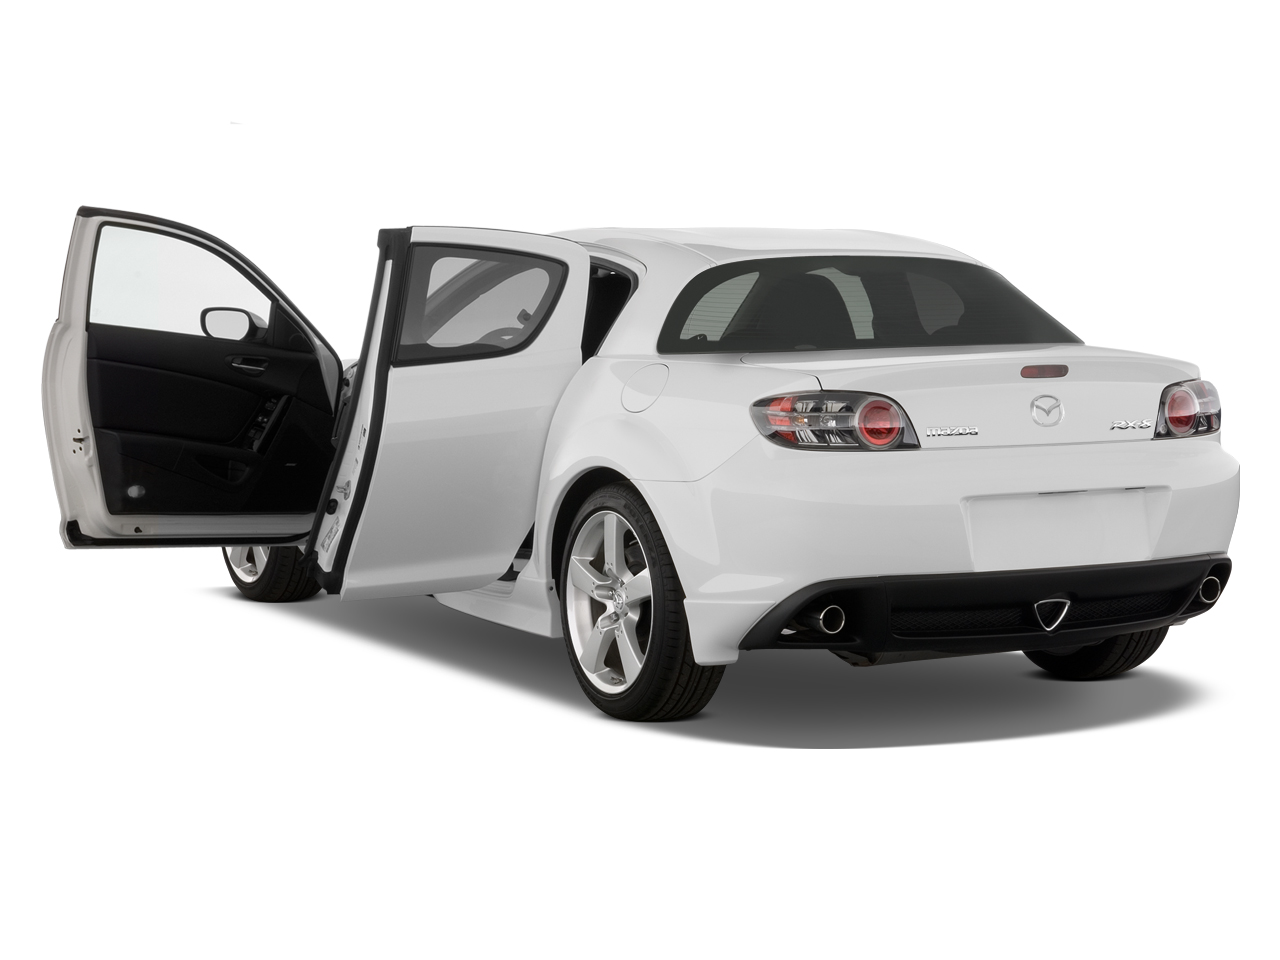 2008 mazda rx 8 r3 mazda sports coupe review. Black Bedroom Furniture Sets. Home Design Ideas